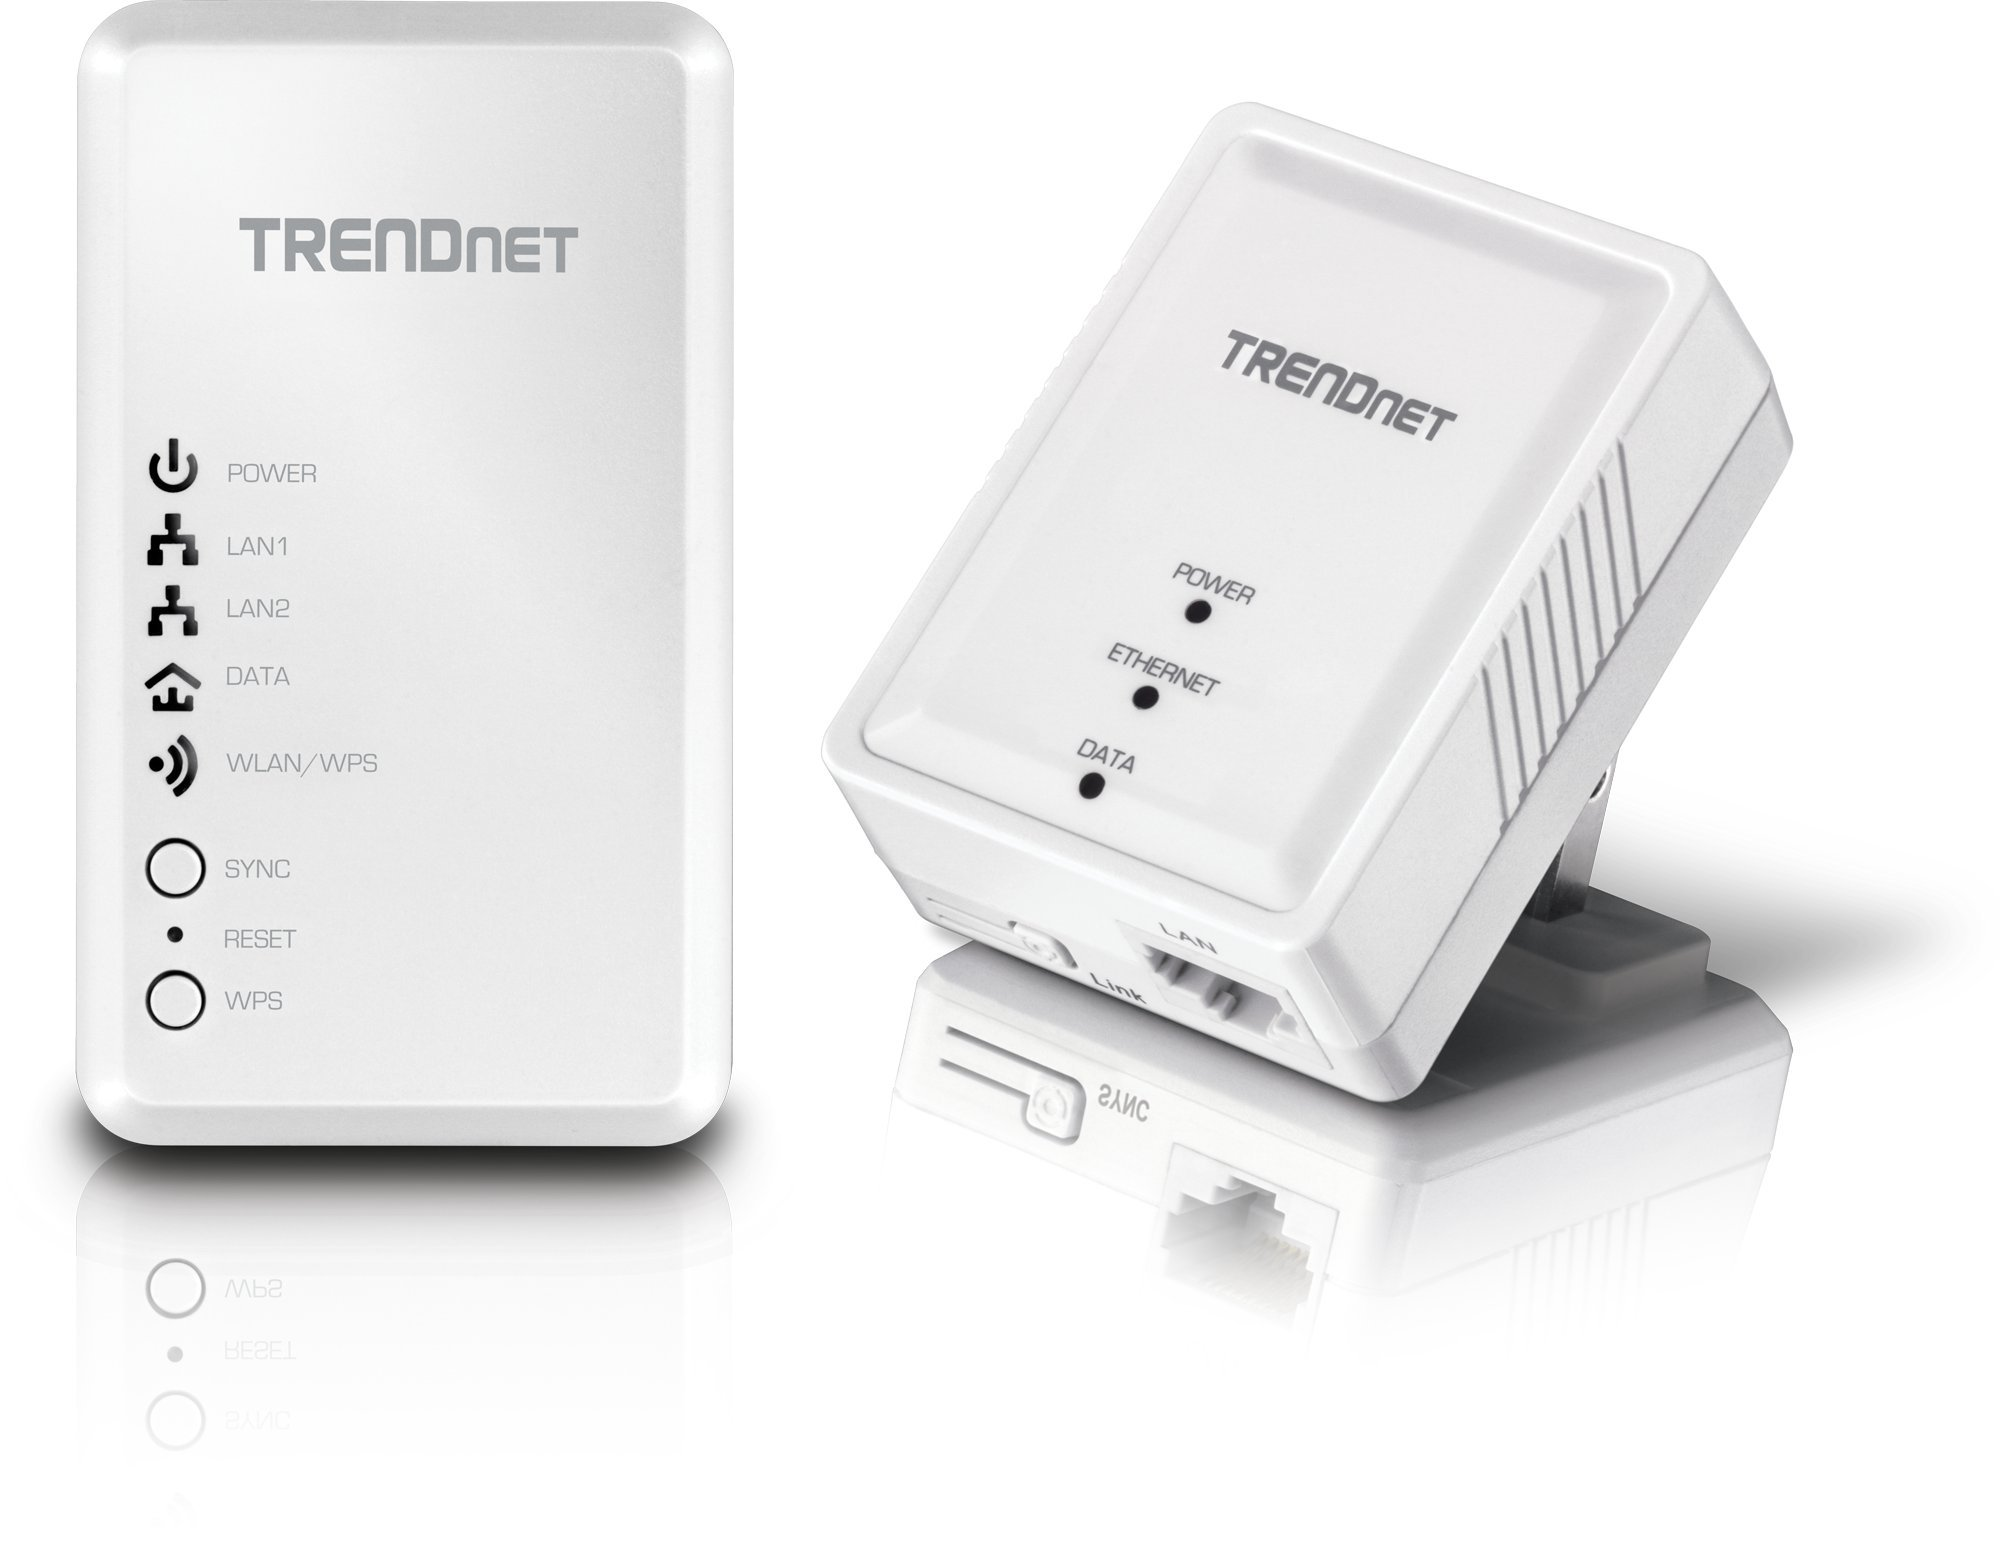 TRENDnet Powerline 500 AV Kit with Wi-Fi Extender, Includes 1 x TPL-406E + 1 x TPL-410AP, 500 AV Powerline and N300 Wireless N, TPL-410APK by TRENDnet